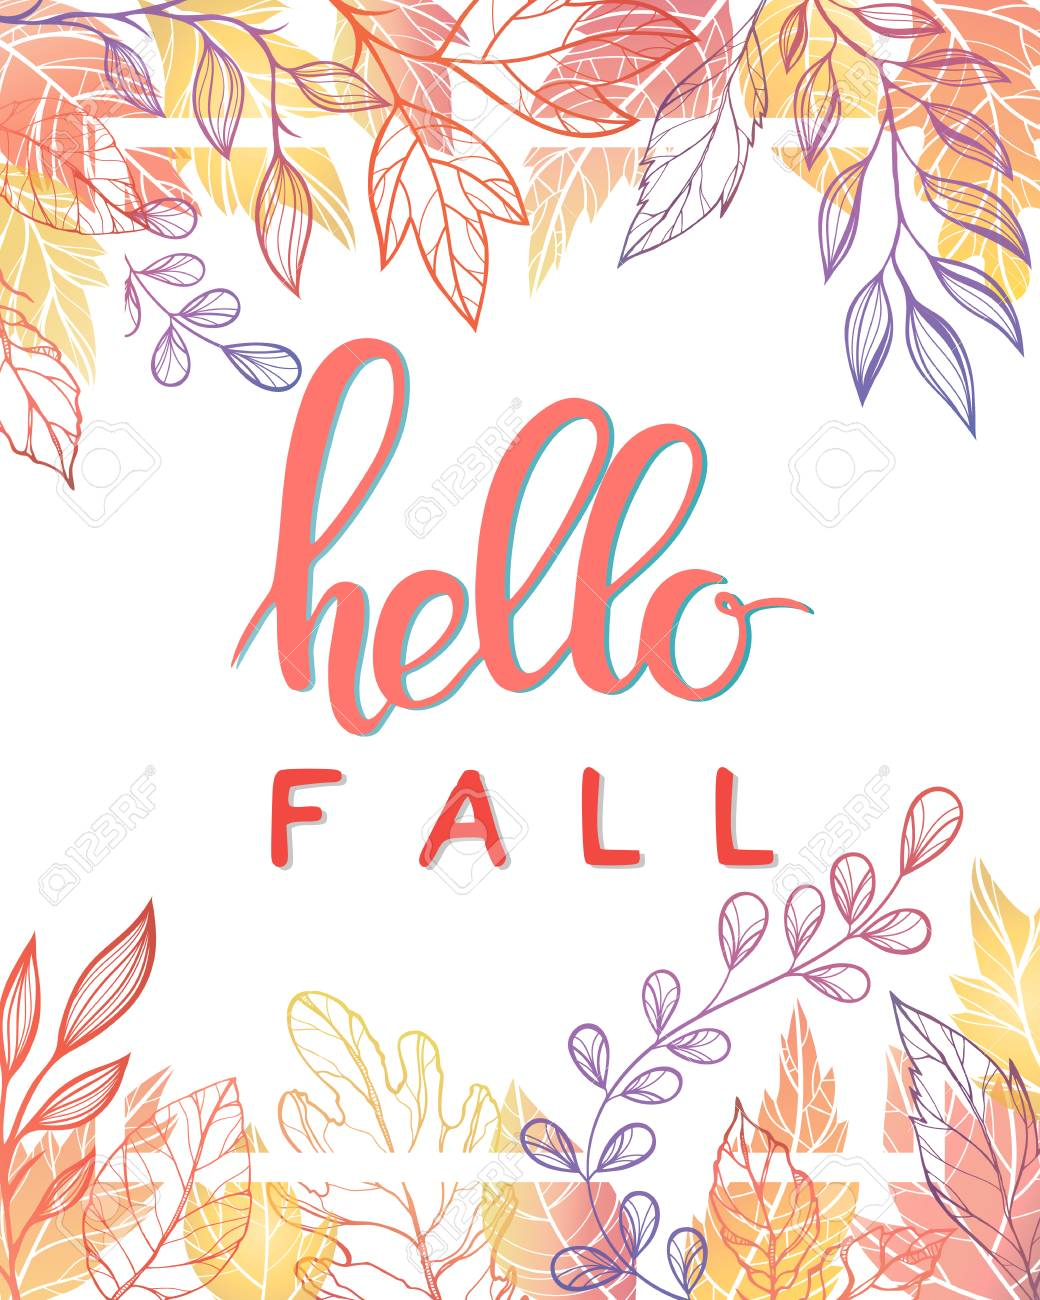 Charming Autumn Card Hello Fall. Hand Painted Lettering With Stylized Leaves In Fall  Colors. Design